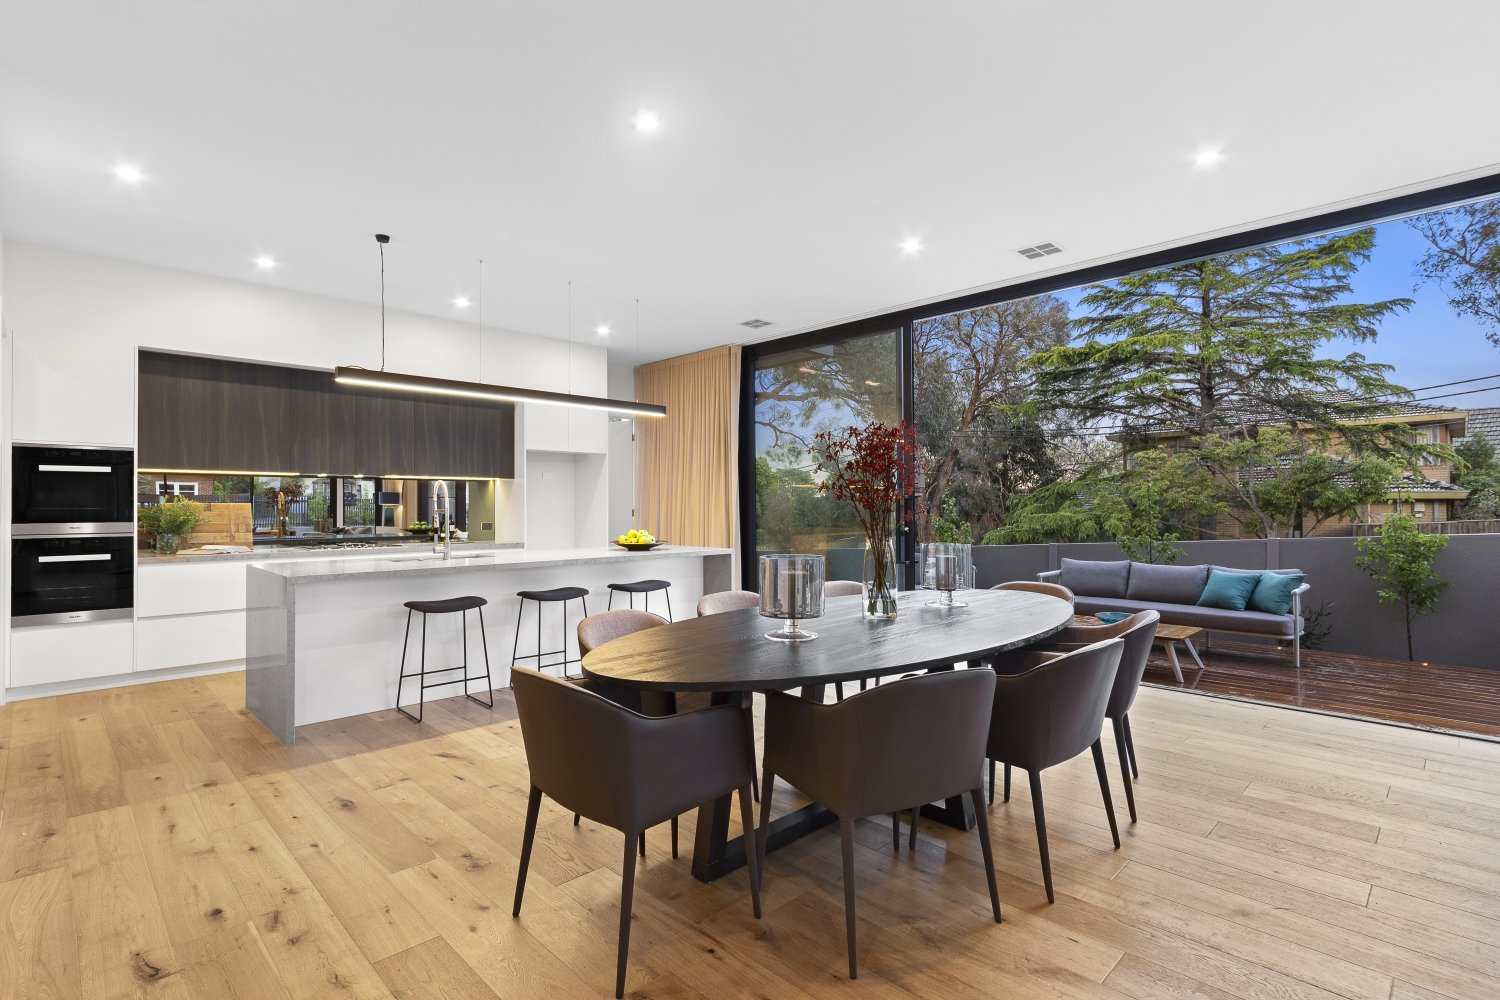 Mass Constuctions renovation and extension builder Caulfield South in south eastern Melbourne Builders in Melbourne Builders in Melbourne Australia Builders in Melbourne South East Builders Melbourne Eastern Suburbs Builders Melbourne Home Designs Builders Melbourne Phone Number Builders Melbourne Renovations Extensions